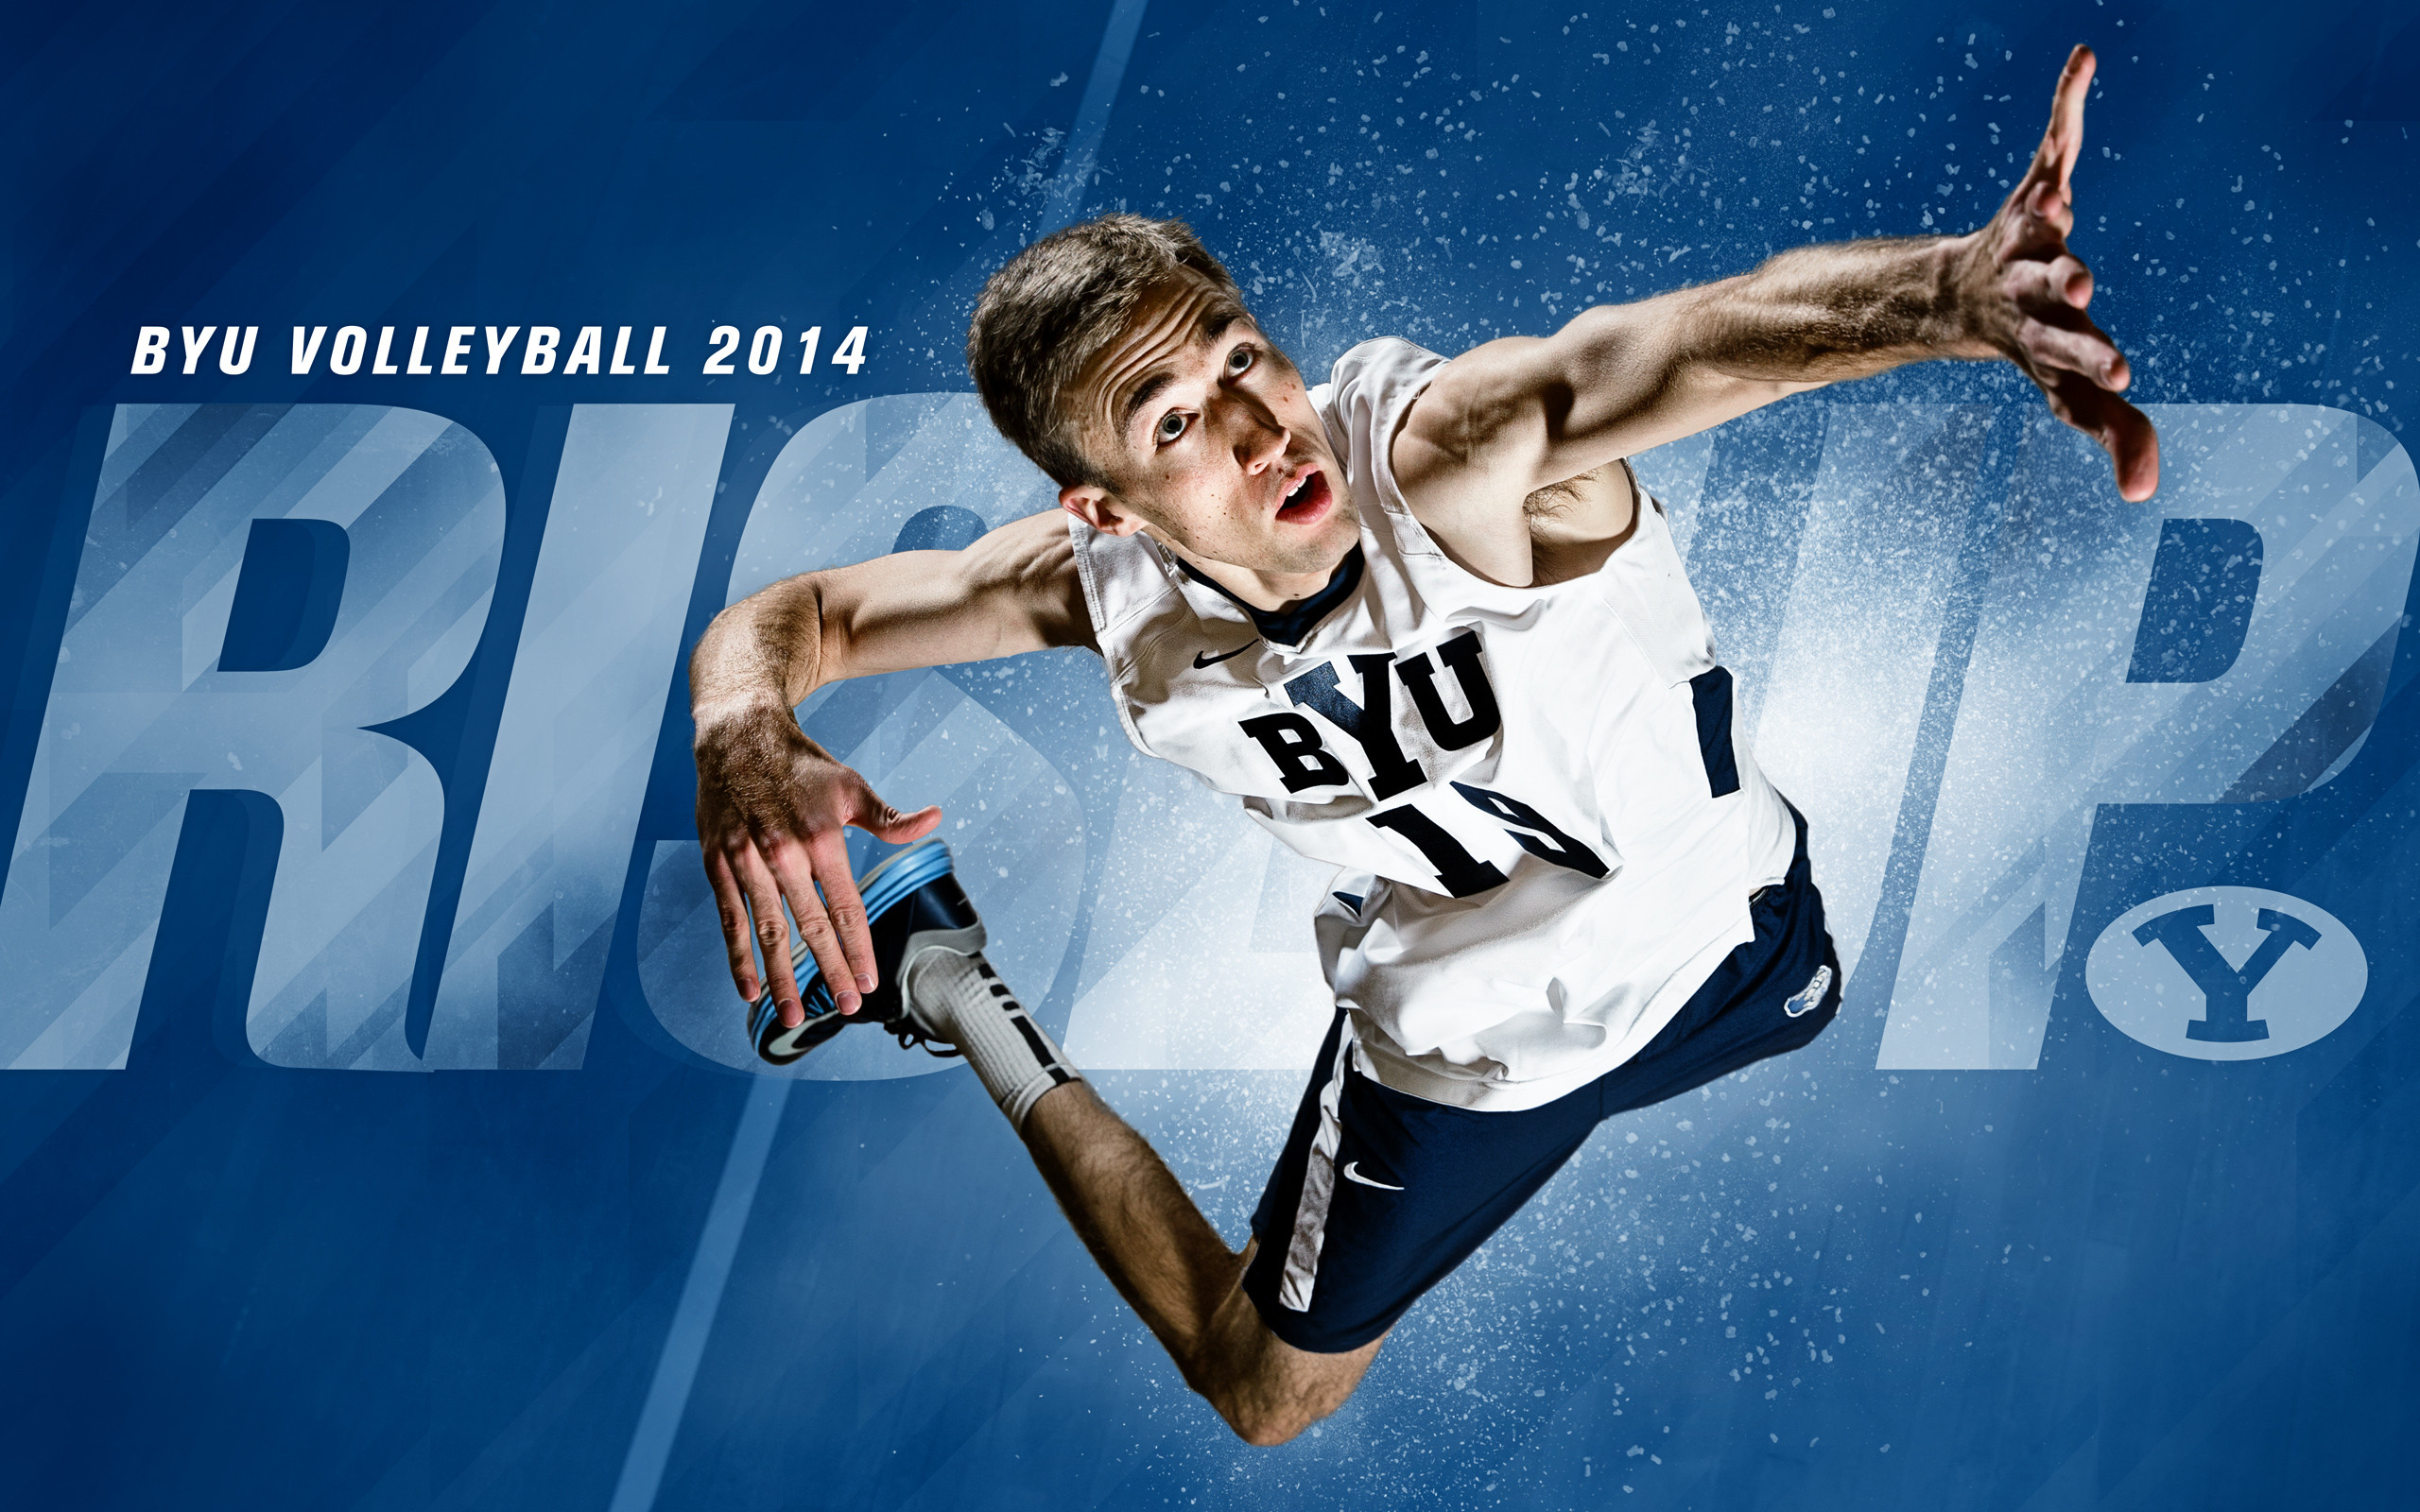 2014 – Devin Young – BYU Volleyball Wallpaper 2014